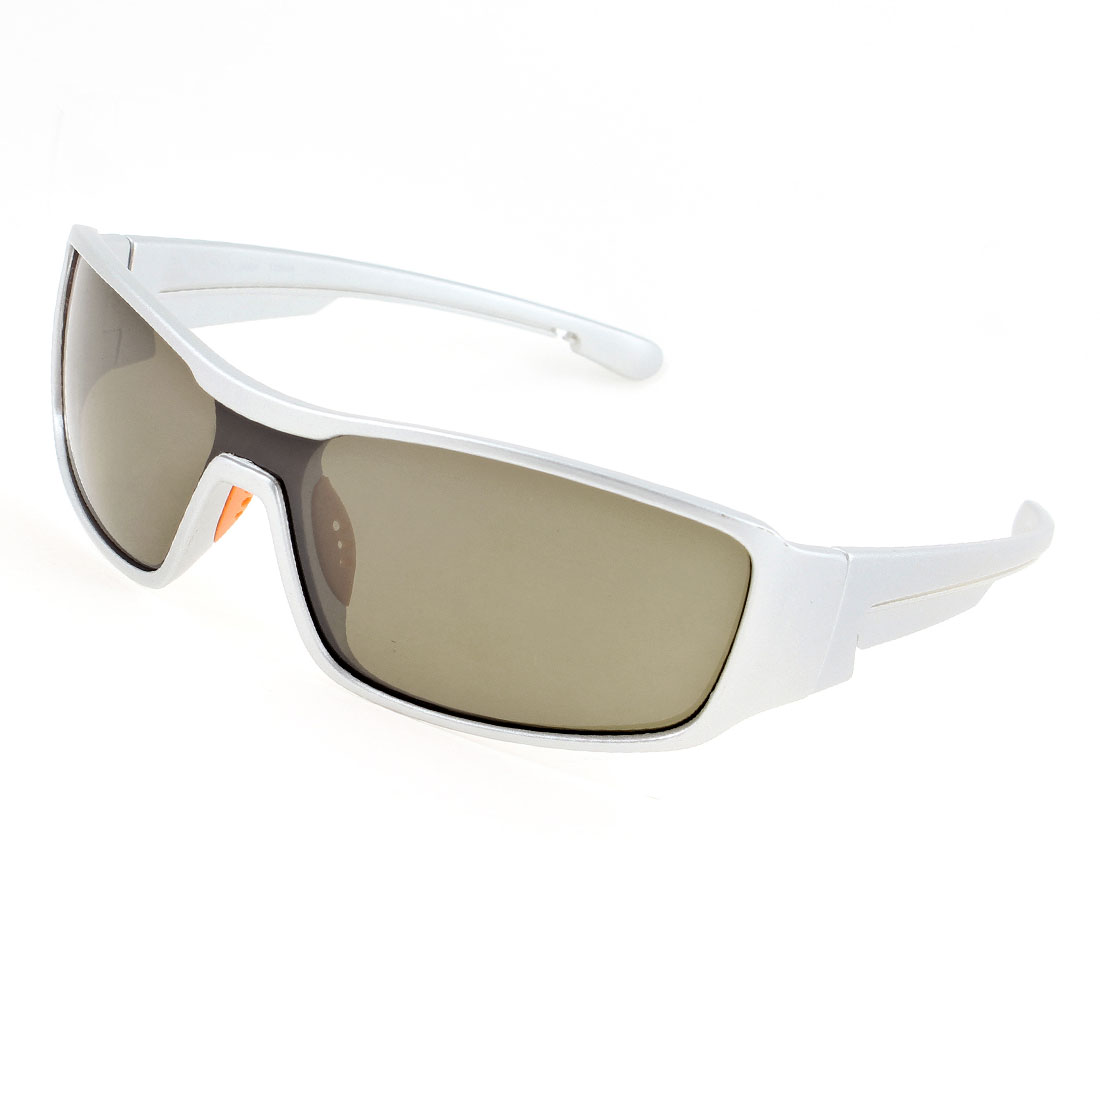 Silvery Tone Full Frame Plastic Sports Sunglasses for Man Woman